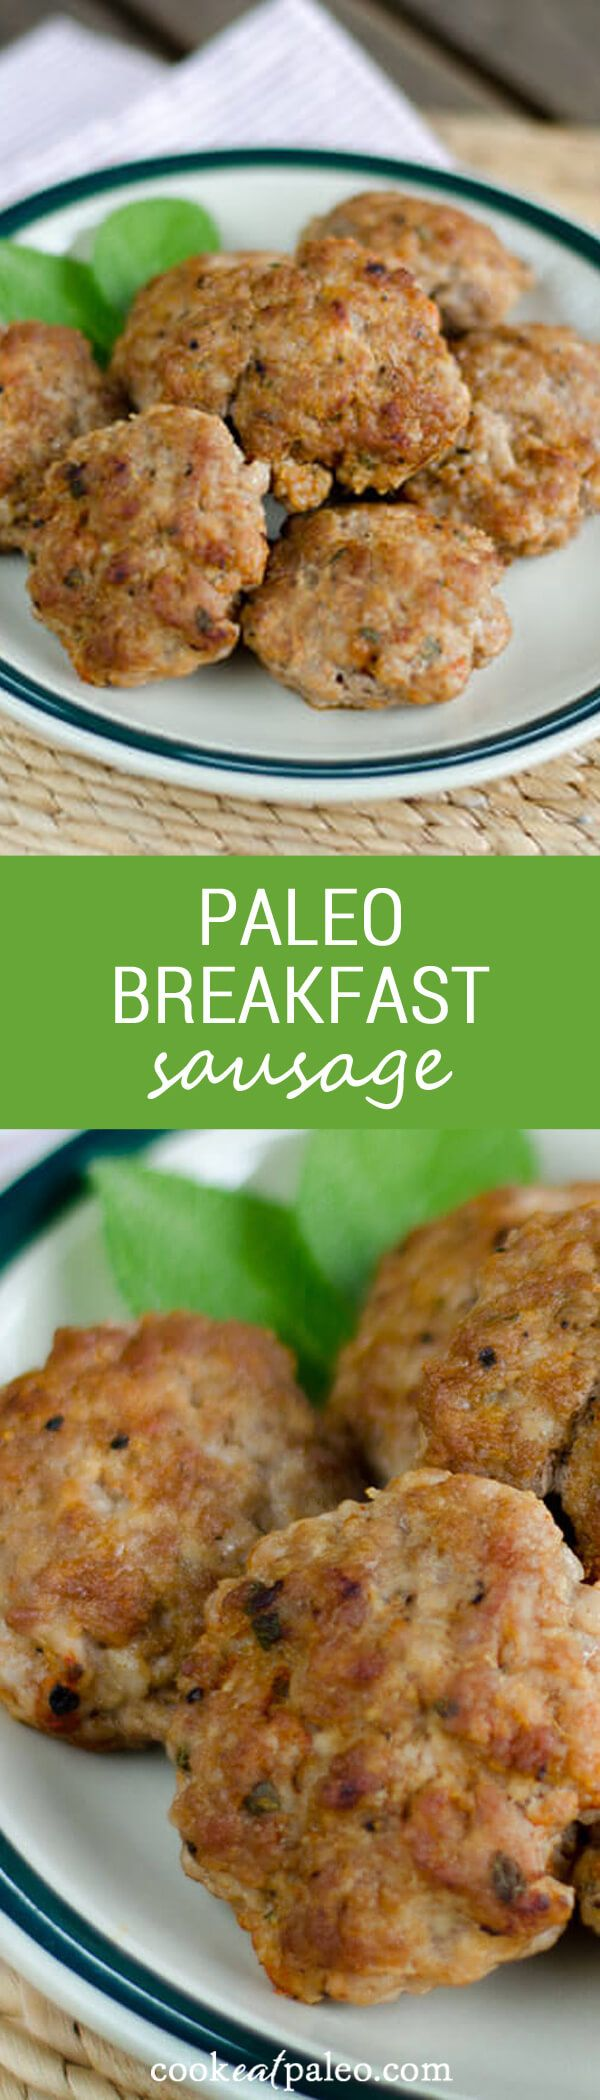 Quick and easy paleo breakfast sausage recipe. With just a few ingredients, you can have sausage patties ready to cook or freeze in less than 5 minutes. ~ http://cookeatpaleo.com